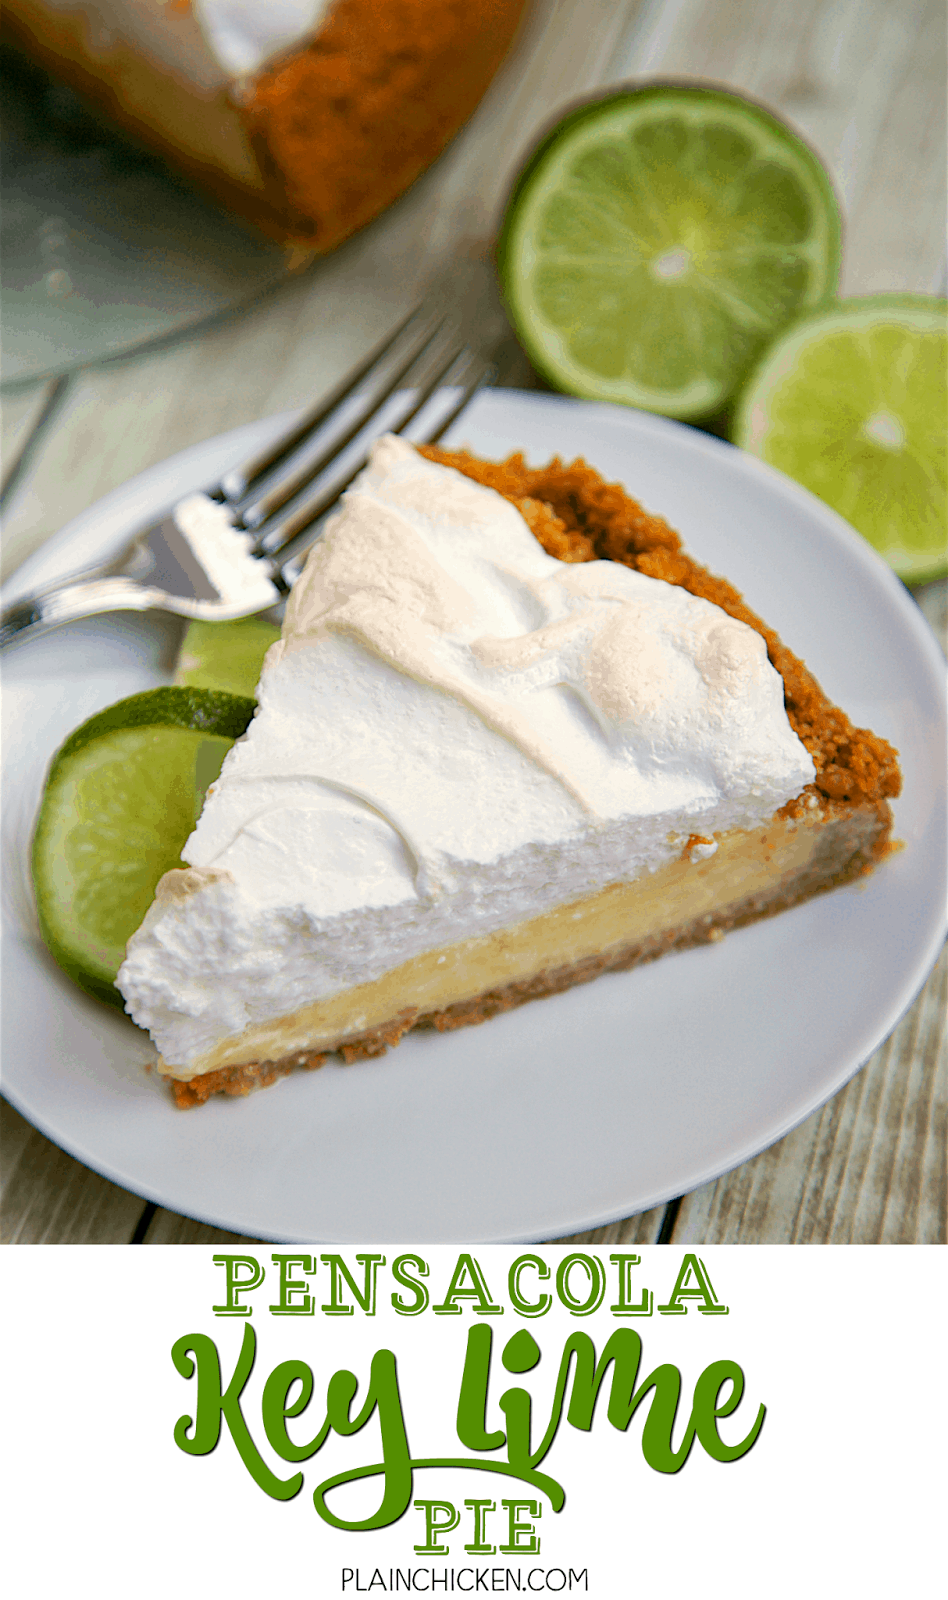 Pensacola Key Lime Pie - recipe from The Fish House in Pensacola Florida. Seriously THE BEST Key Lime Pie recipe. Everyone raves about this pie! Homemade graham cracker crust, key lime juice, eggs, sweetened condensed milk. Can top with meringue or fresh whipped cream. Either way is delicious! SO simple, but SO good!! This never lasts long and everyone wants the recipe!